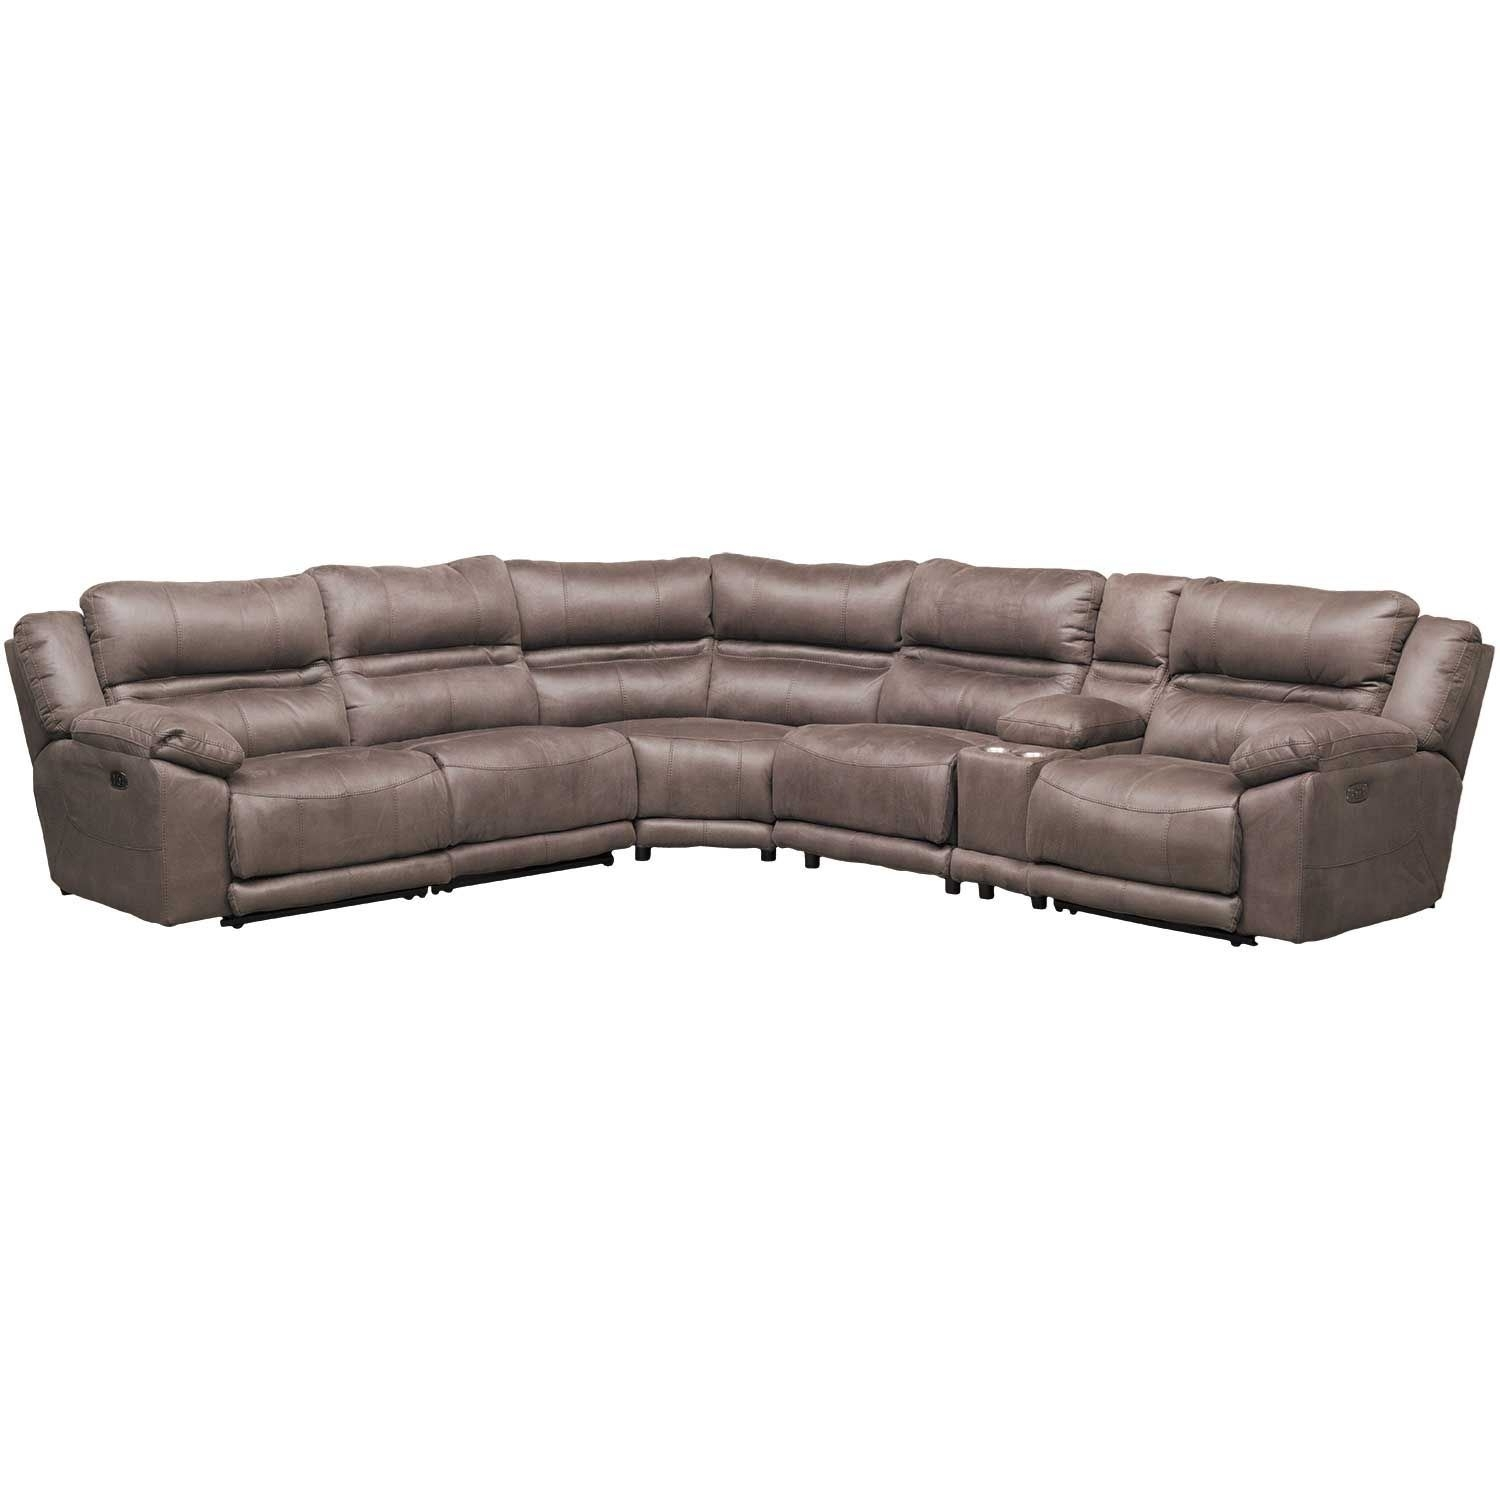 Braxton 6 Piece Power Reclining Sectional With Adjustable Headrest For Jackson 6 Piece Power Reclining Sectionals With Sleeper (View 3 of 25)